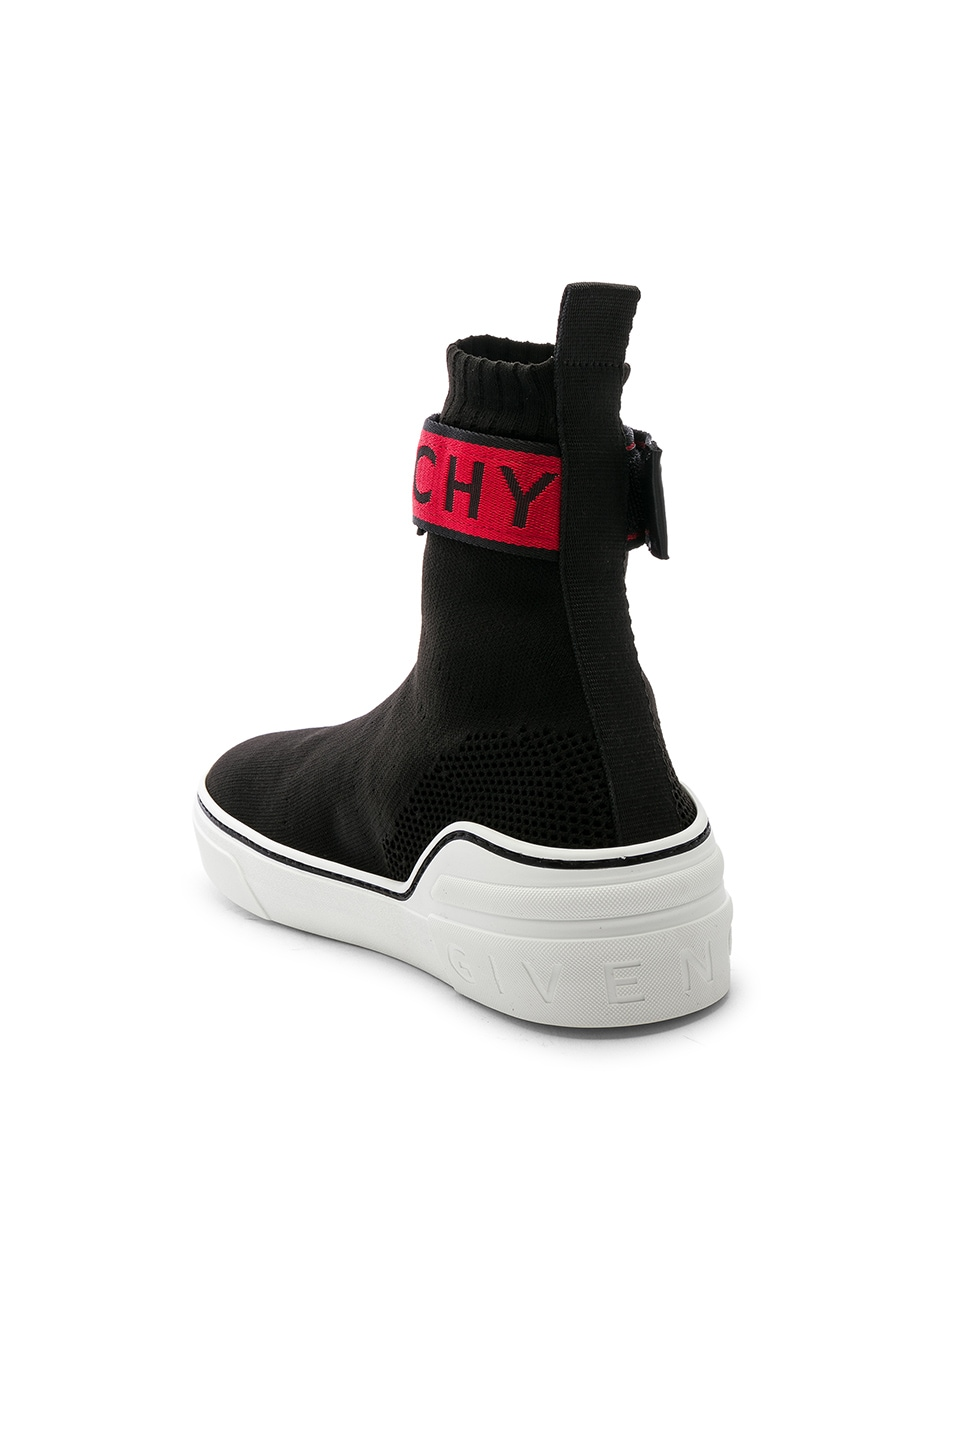 Image 3 of Givenchy George V Sock Sneakers in Black & Red